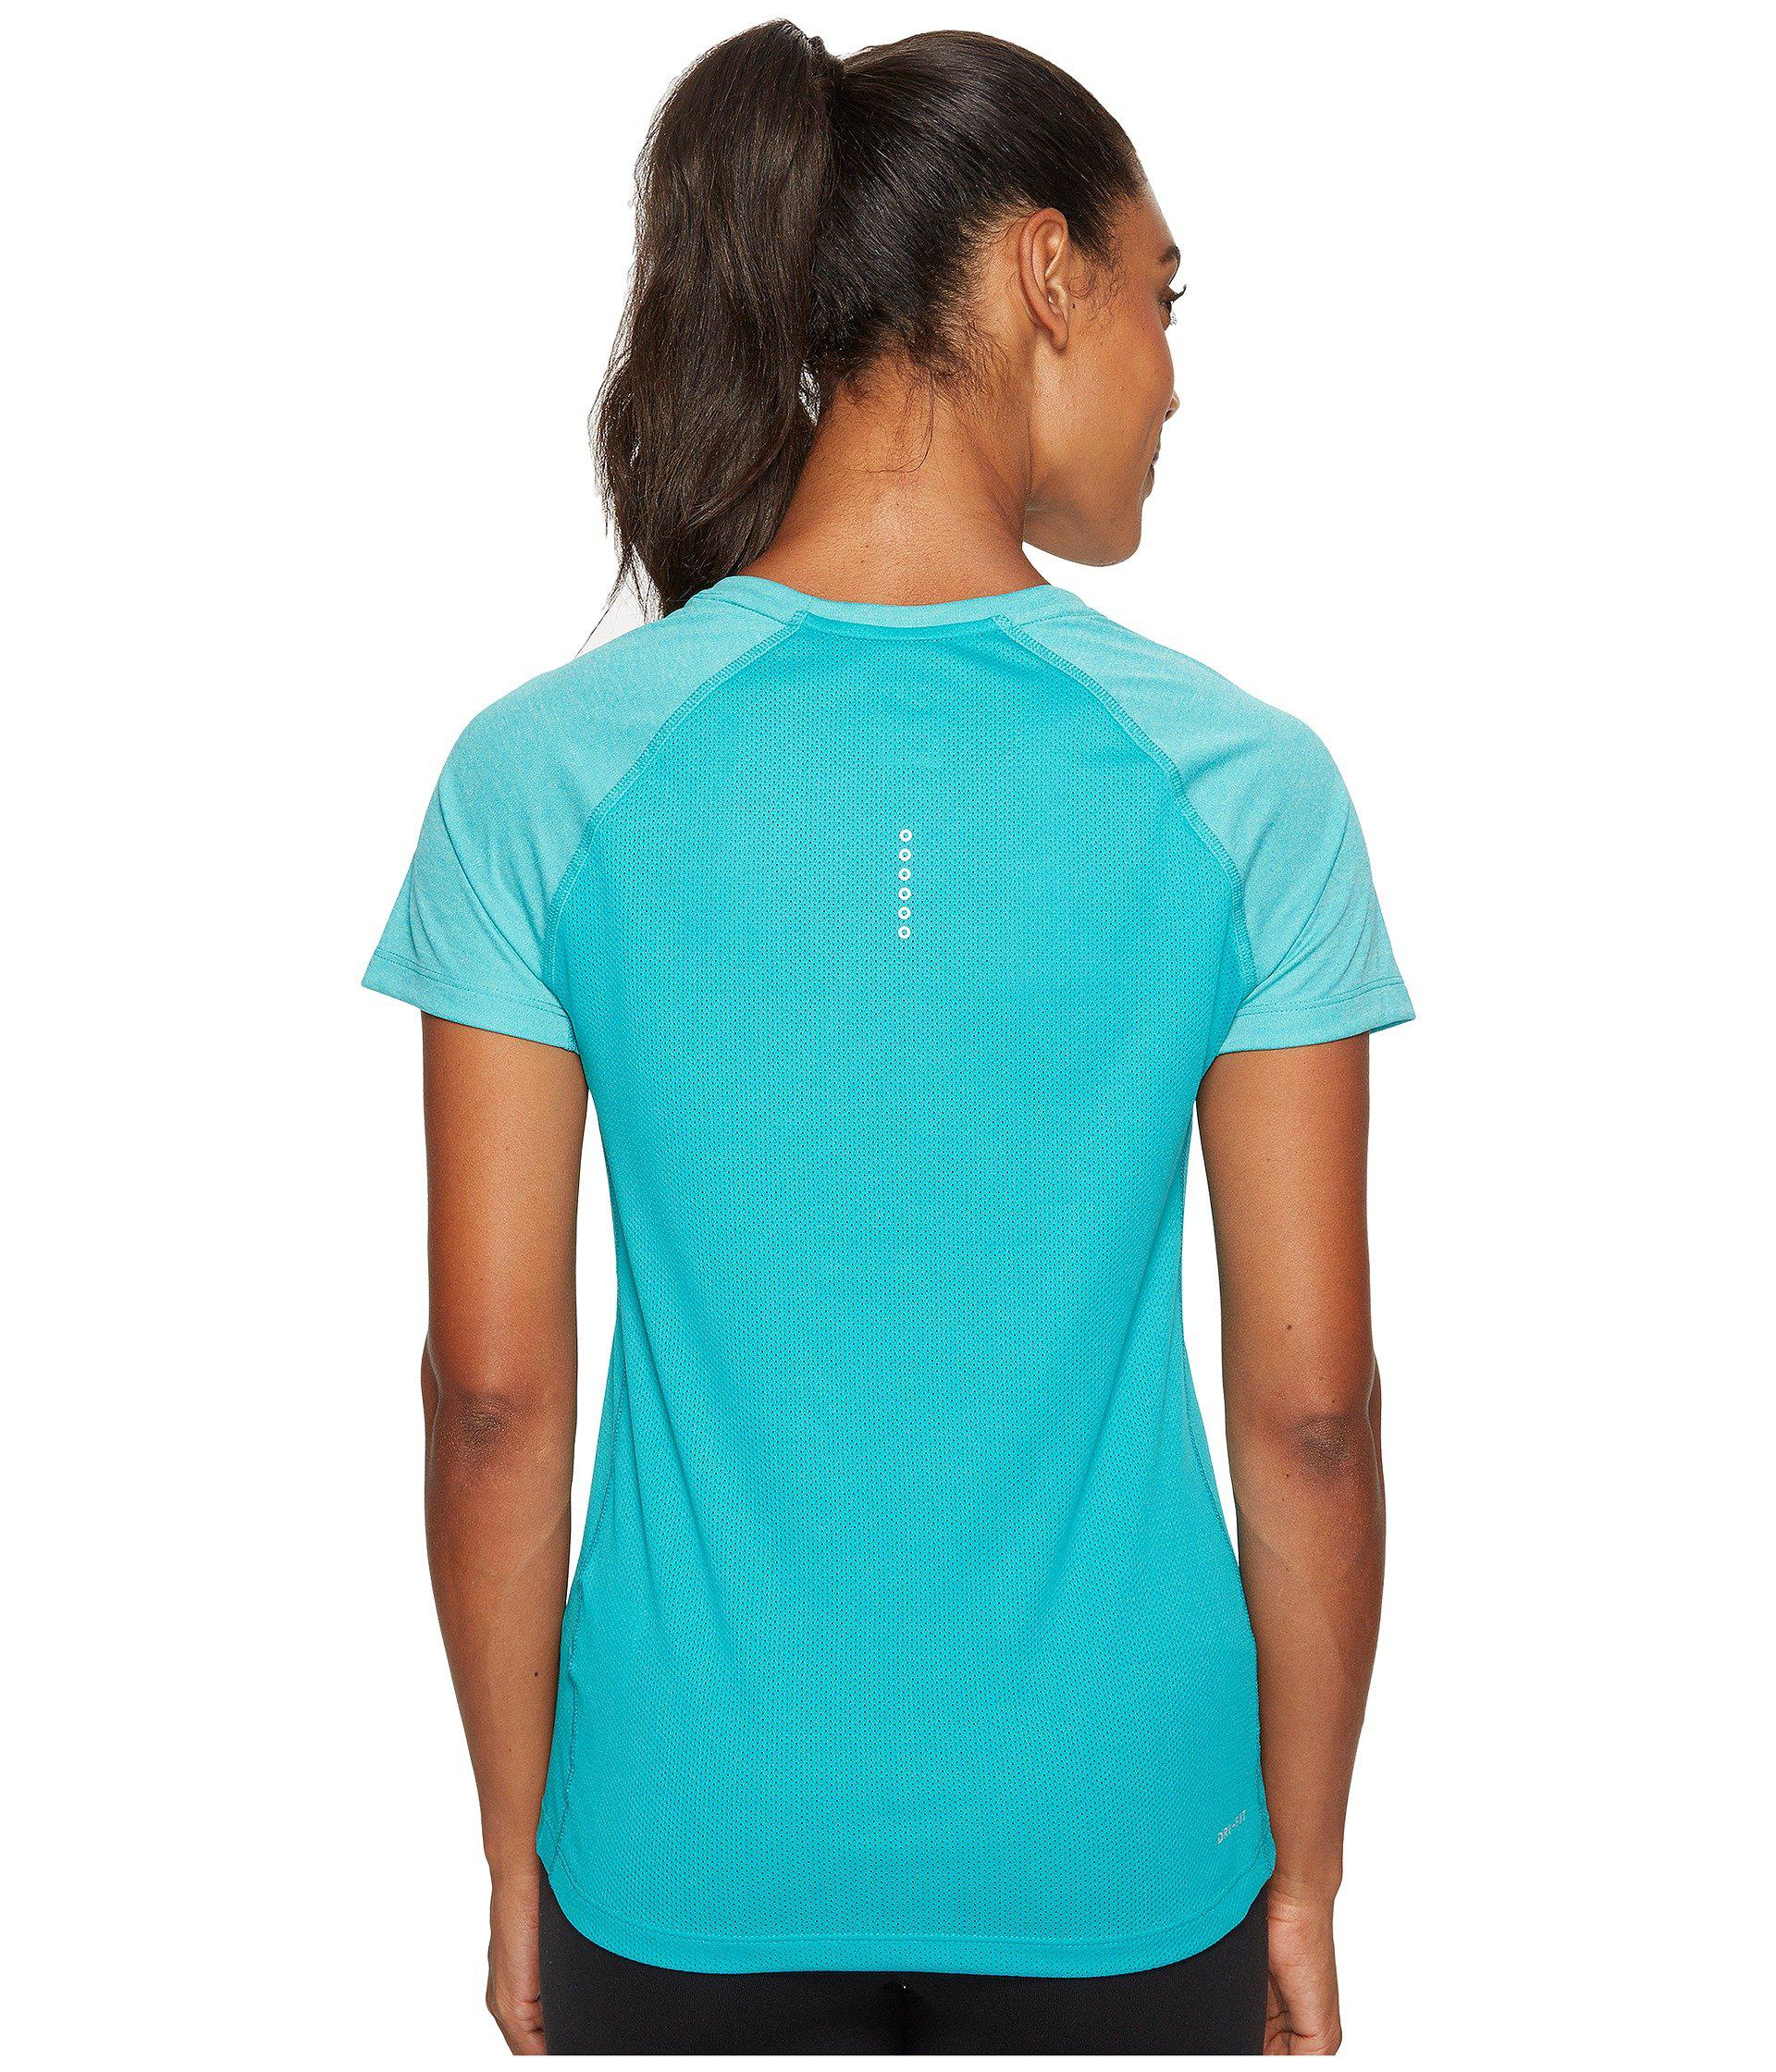 finest selection 407fa 23206 Lyst - Nike Dry Miler Short Sleeve Running Top in Blue